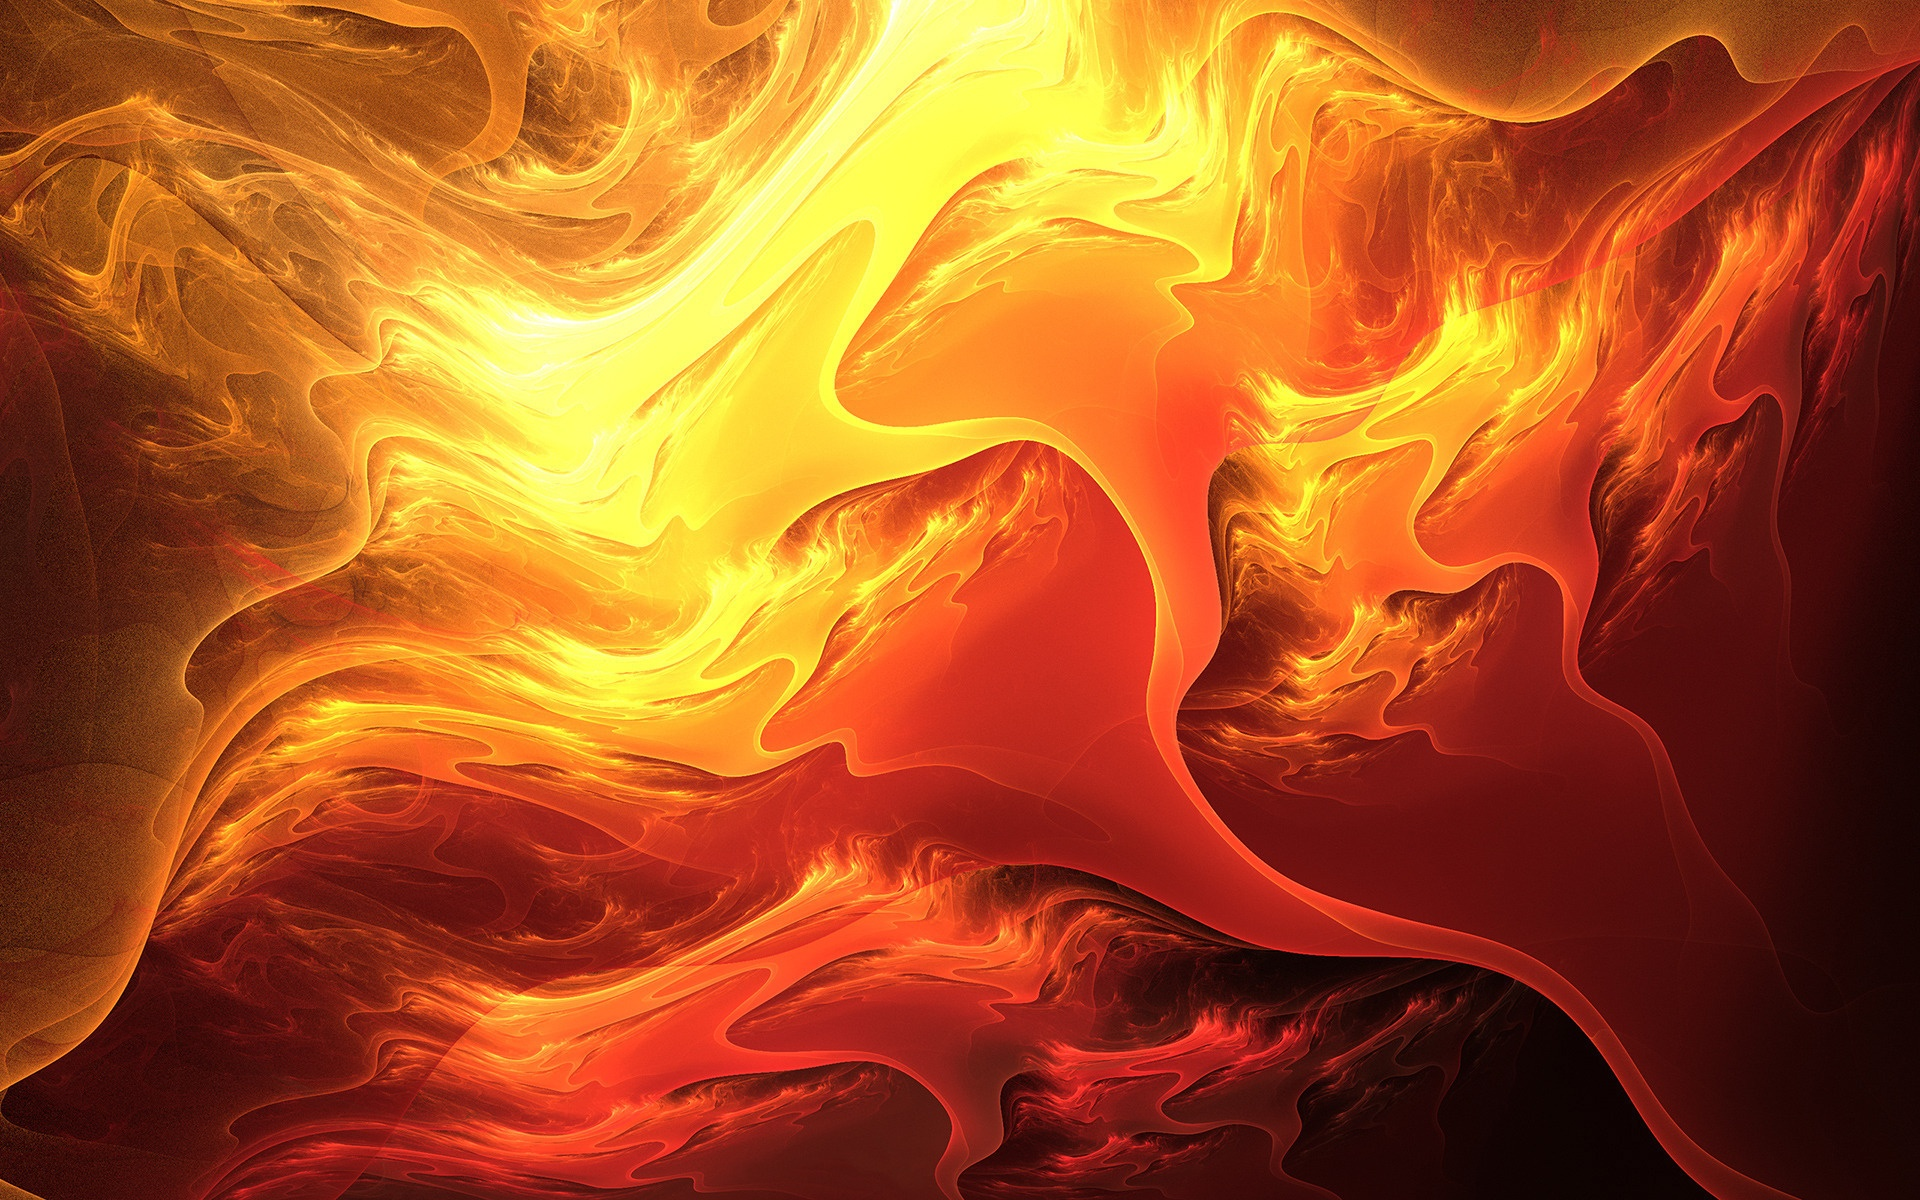 Abstraction fiery colors of lava wallpaper 1920x1200.